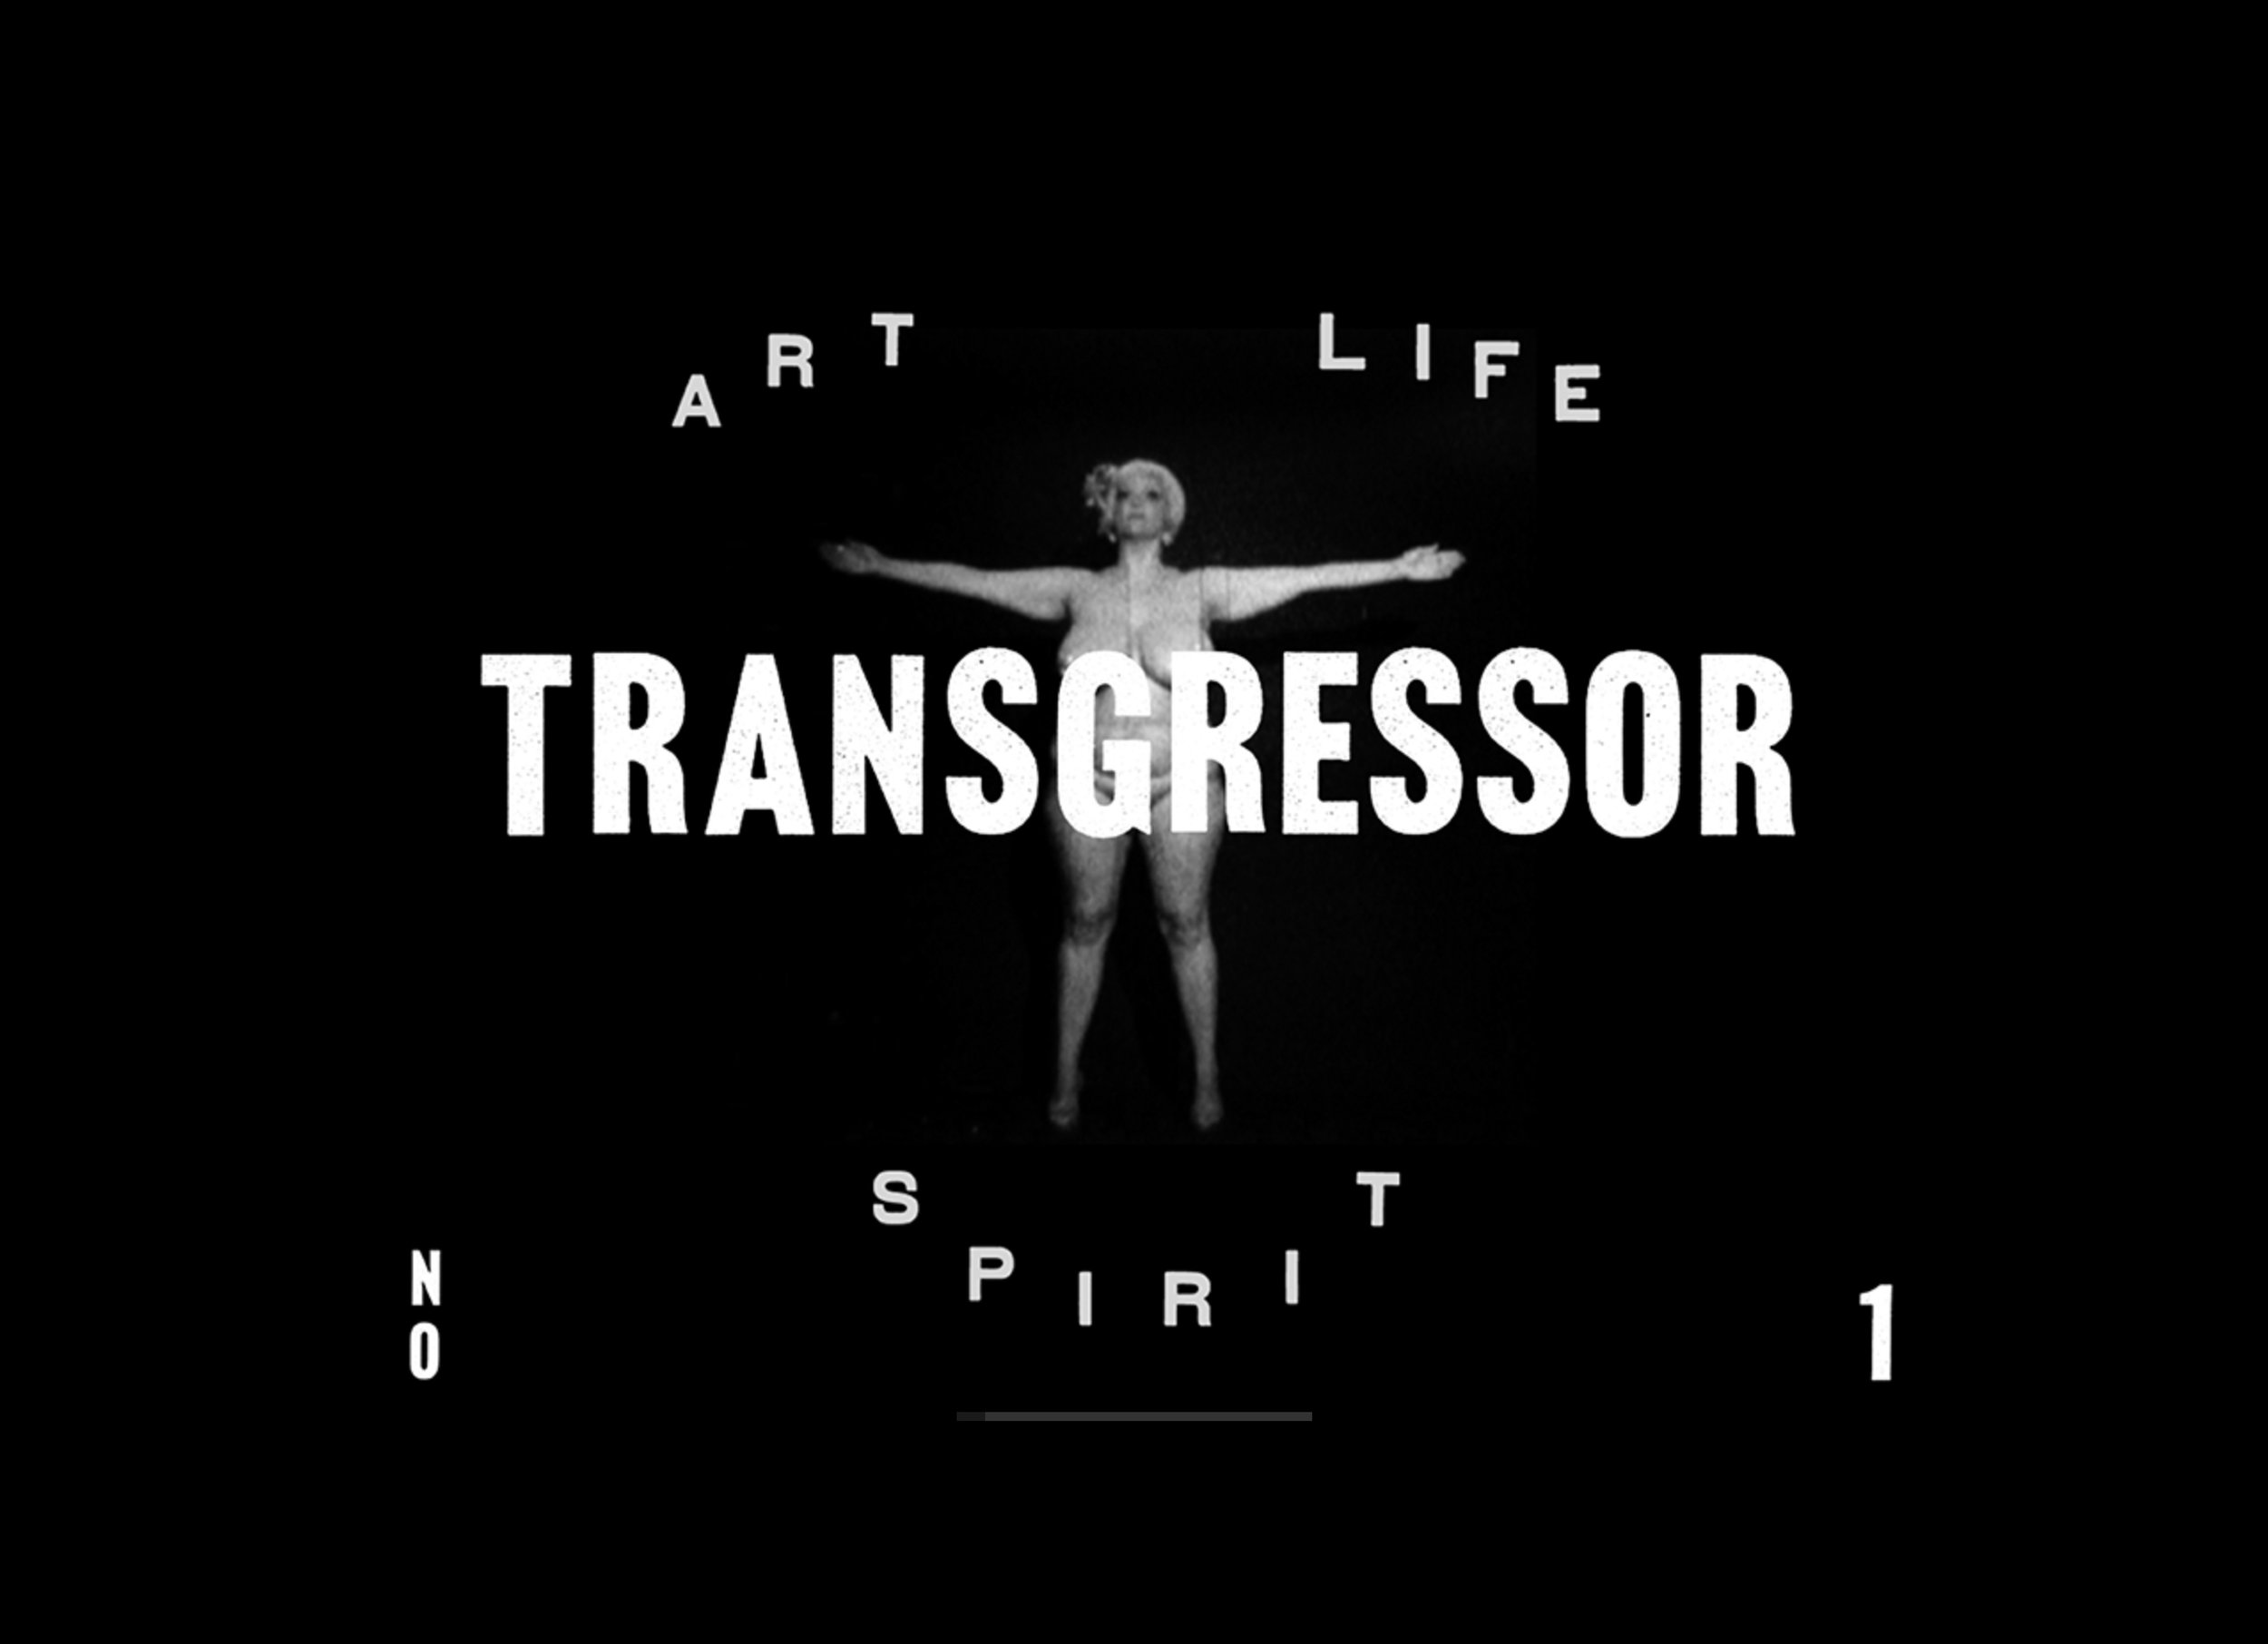 Transgressor Magazine,Shoot the Arrow - SEPTEMBER 2012 Shoot the Arrow is the cover story of Transgressor magazine's debut issue, including interviews and audio of The World Famous *BOB* and Amy's super-8 film of her performing